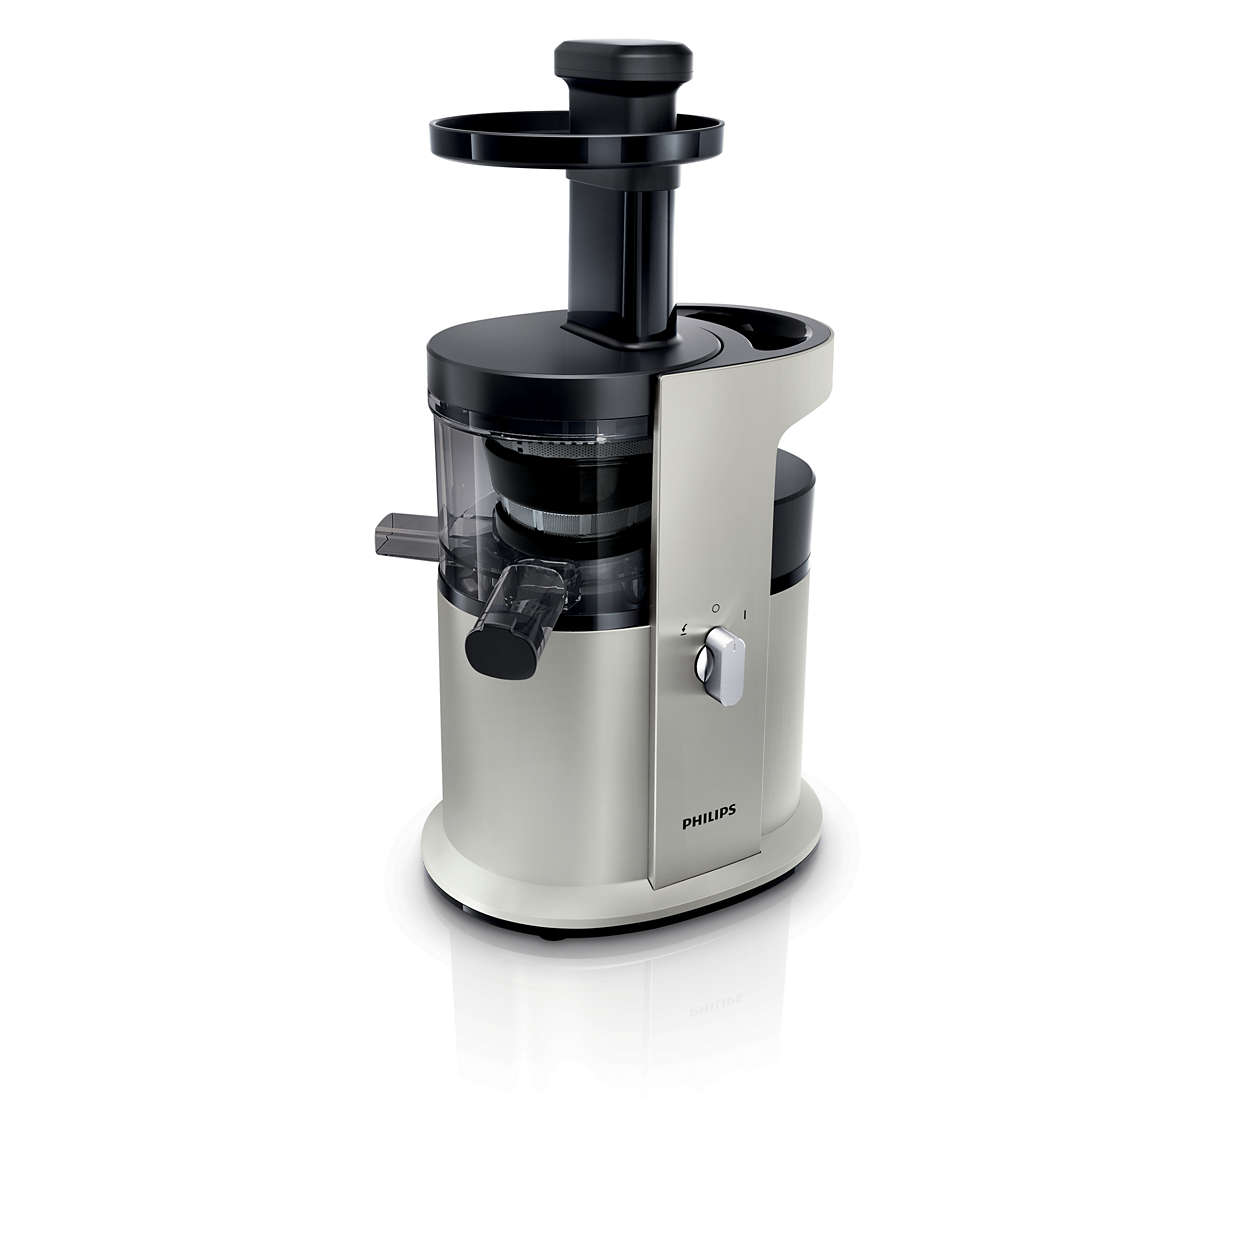 Philips Slow Juicer Vs Panasonic : Avance Collection Slow Juicer HR1882/31 Philips